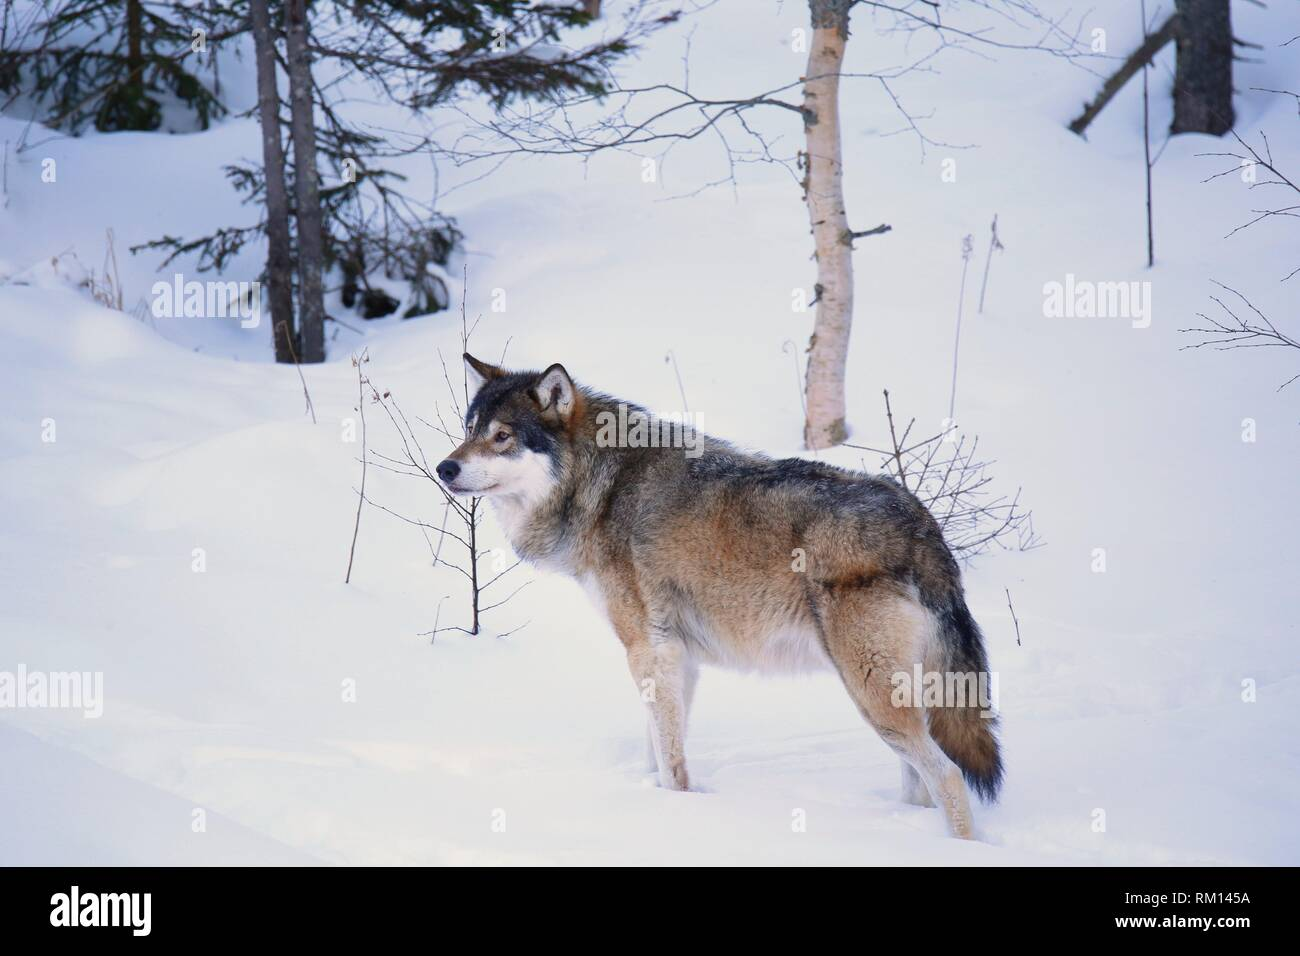 Wolf (Canis lupus), Dalarna, Sweden - Stock Image